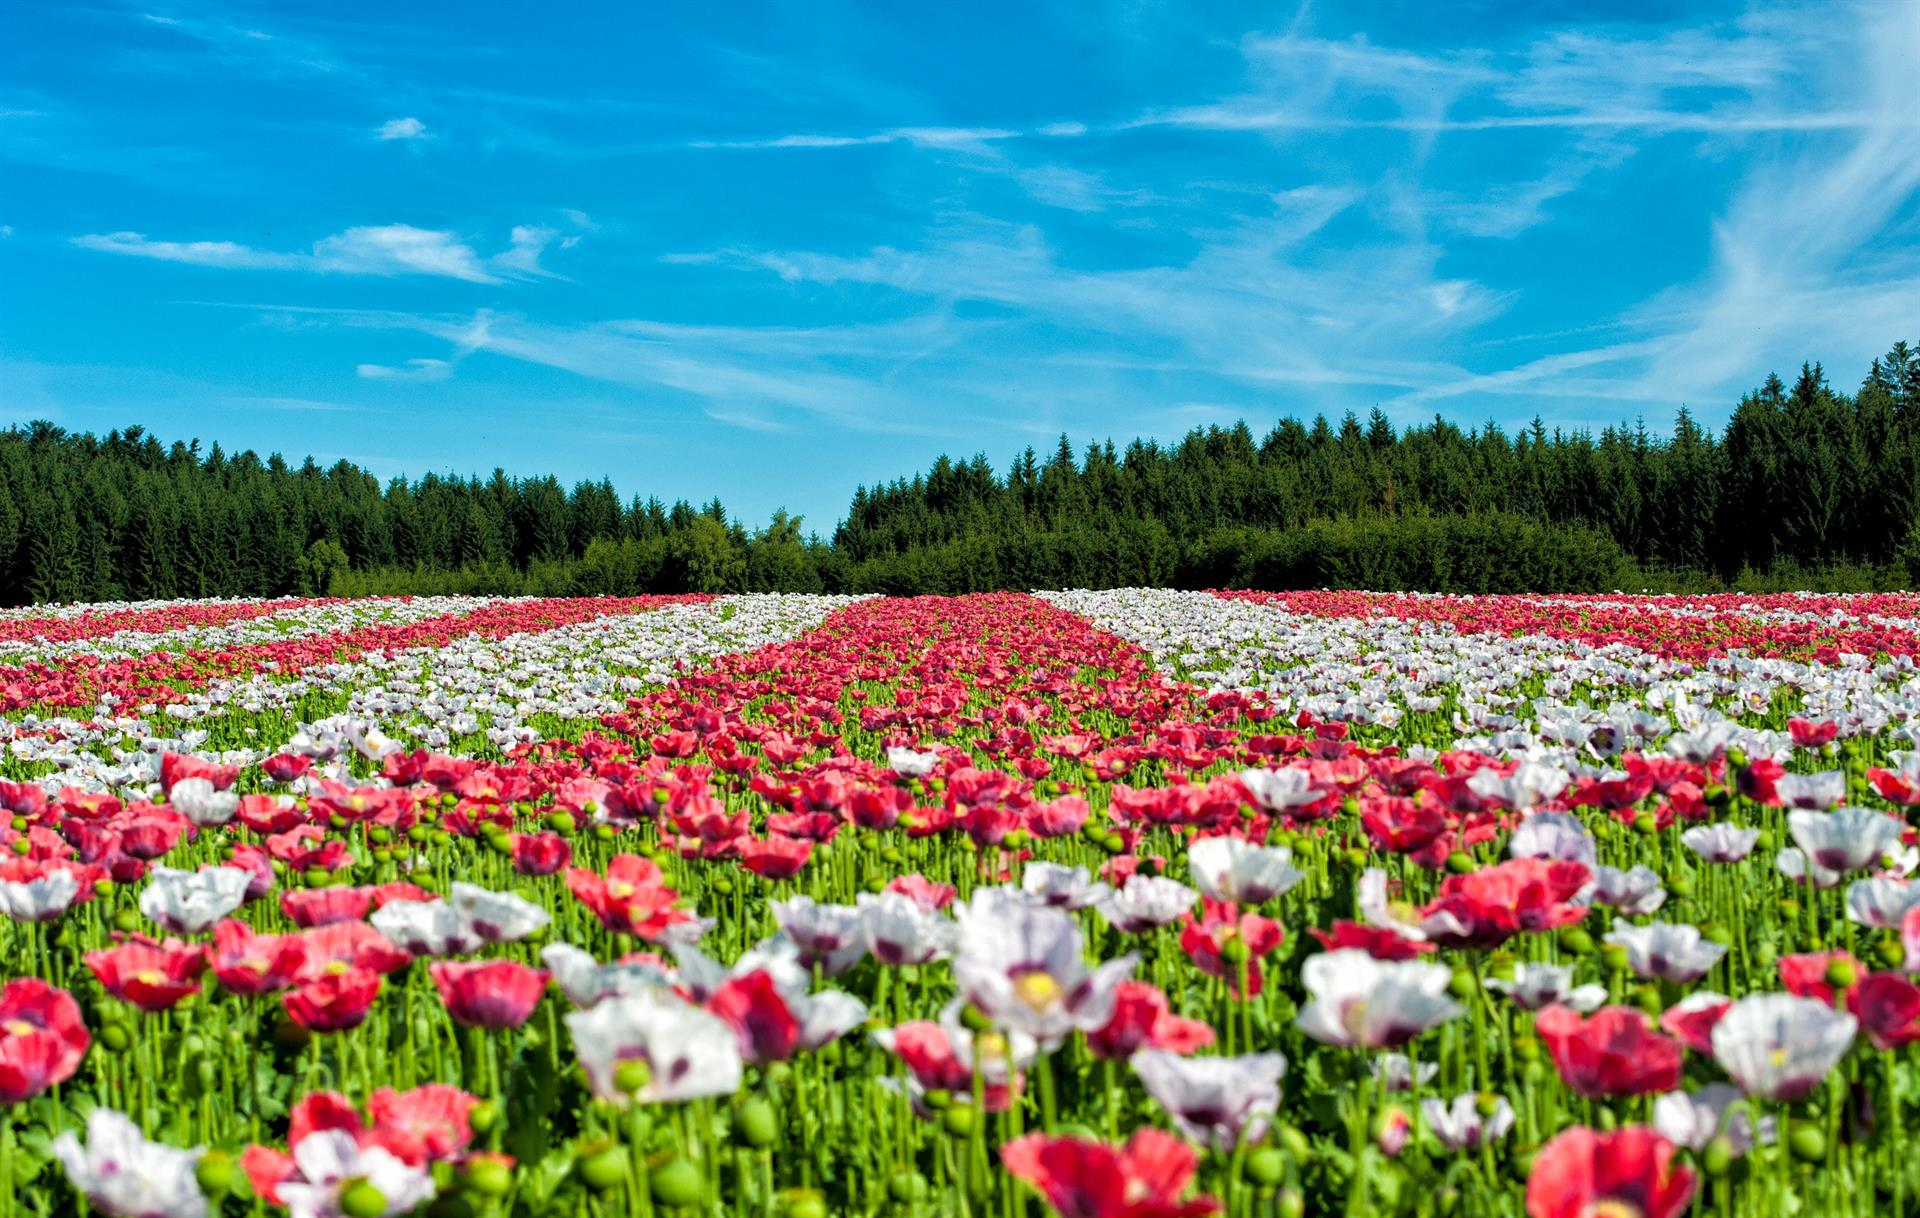 A vast field of red and white poppies on a clear, sunny day